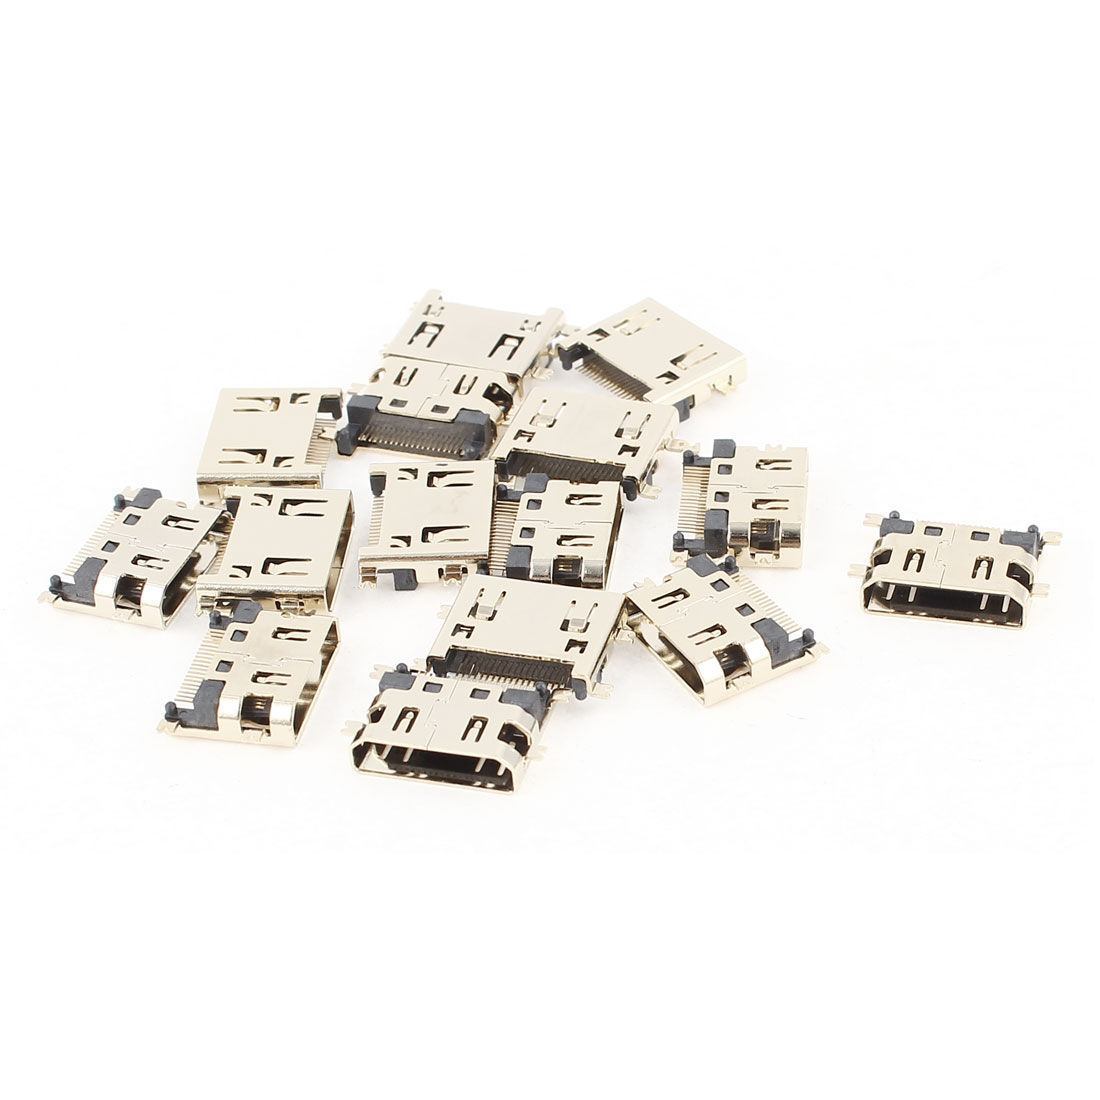 15Pcs Mini Micro HDMI 19Pins Female Socket Jack Connectors Gold Tone